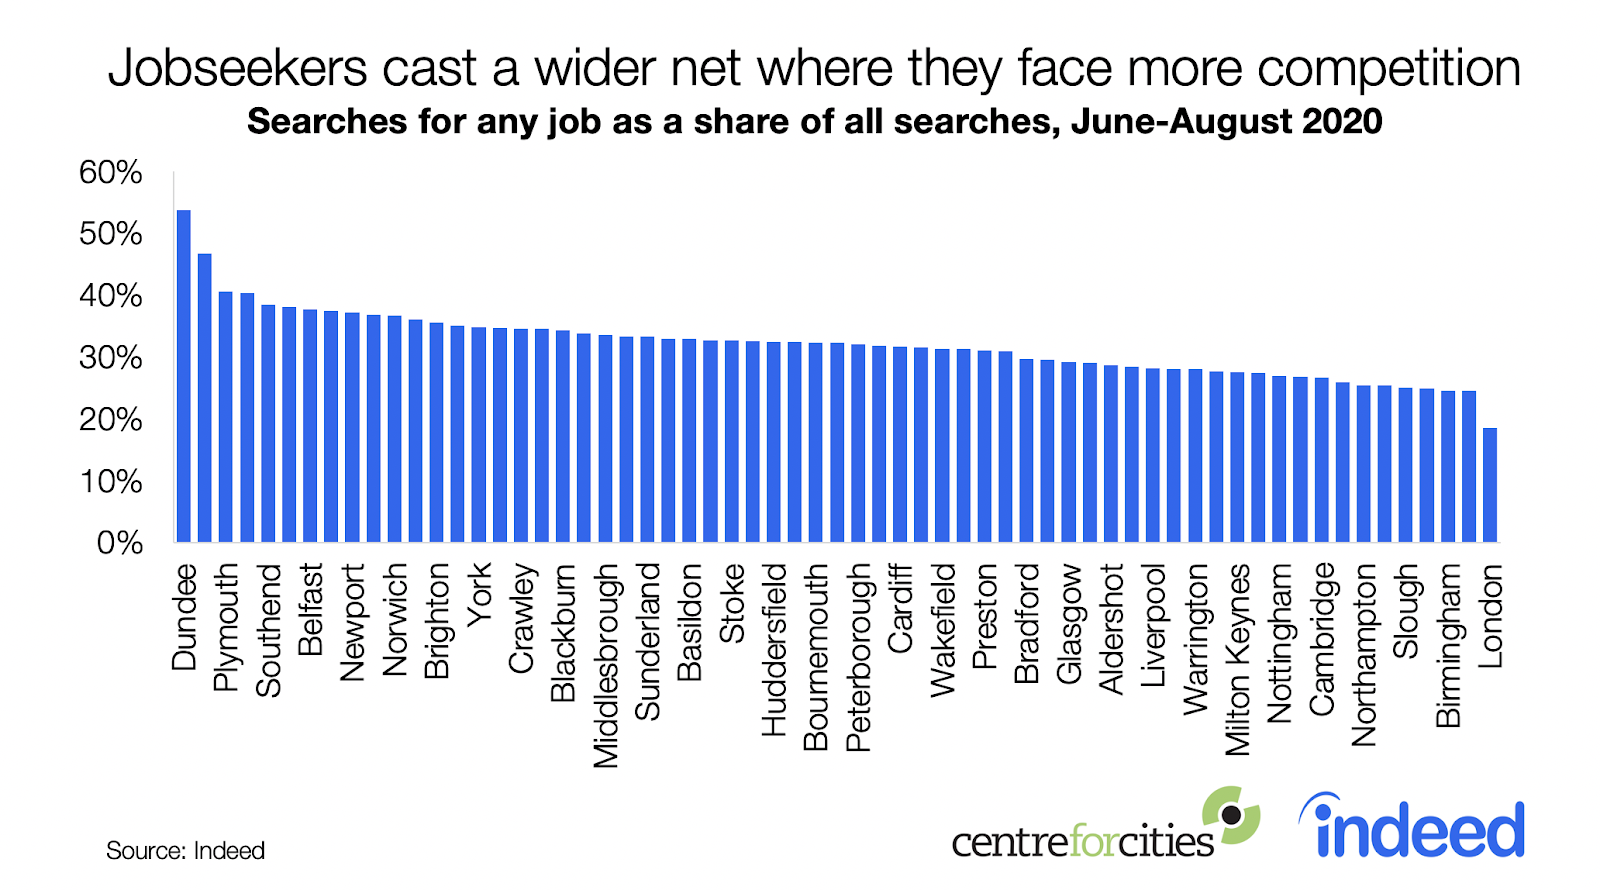 Bar chart showing jobseekers job hunt harder when they face more competition